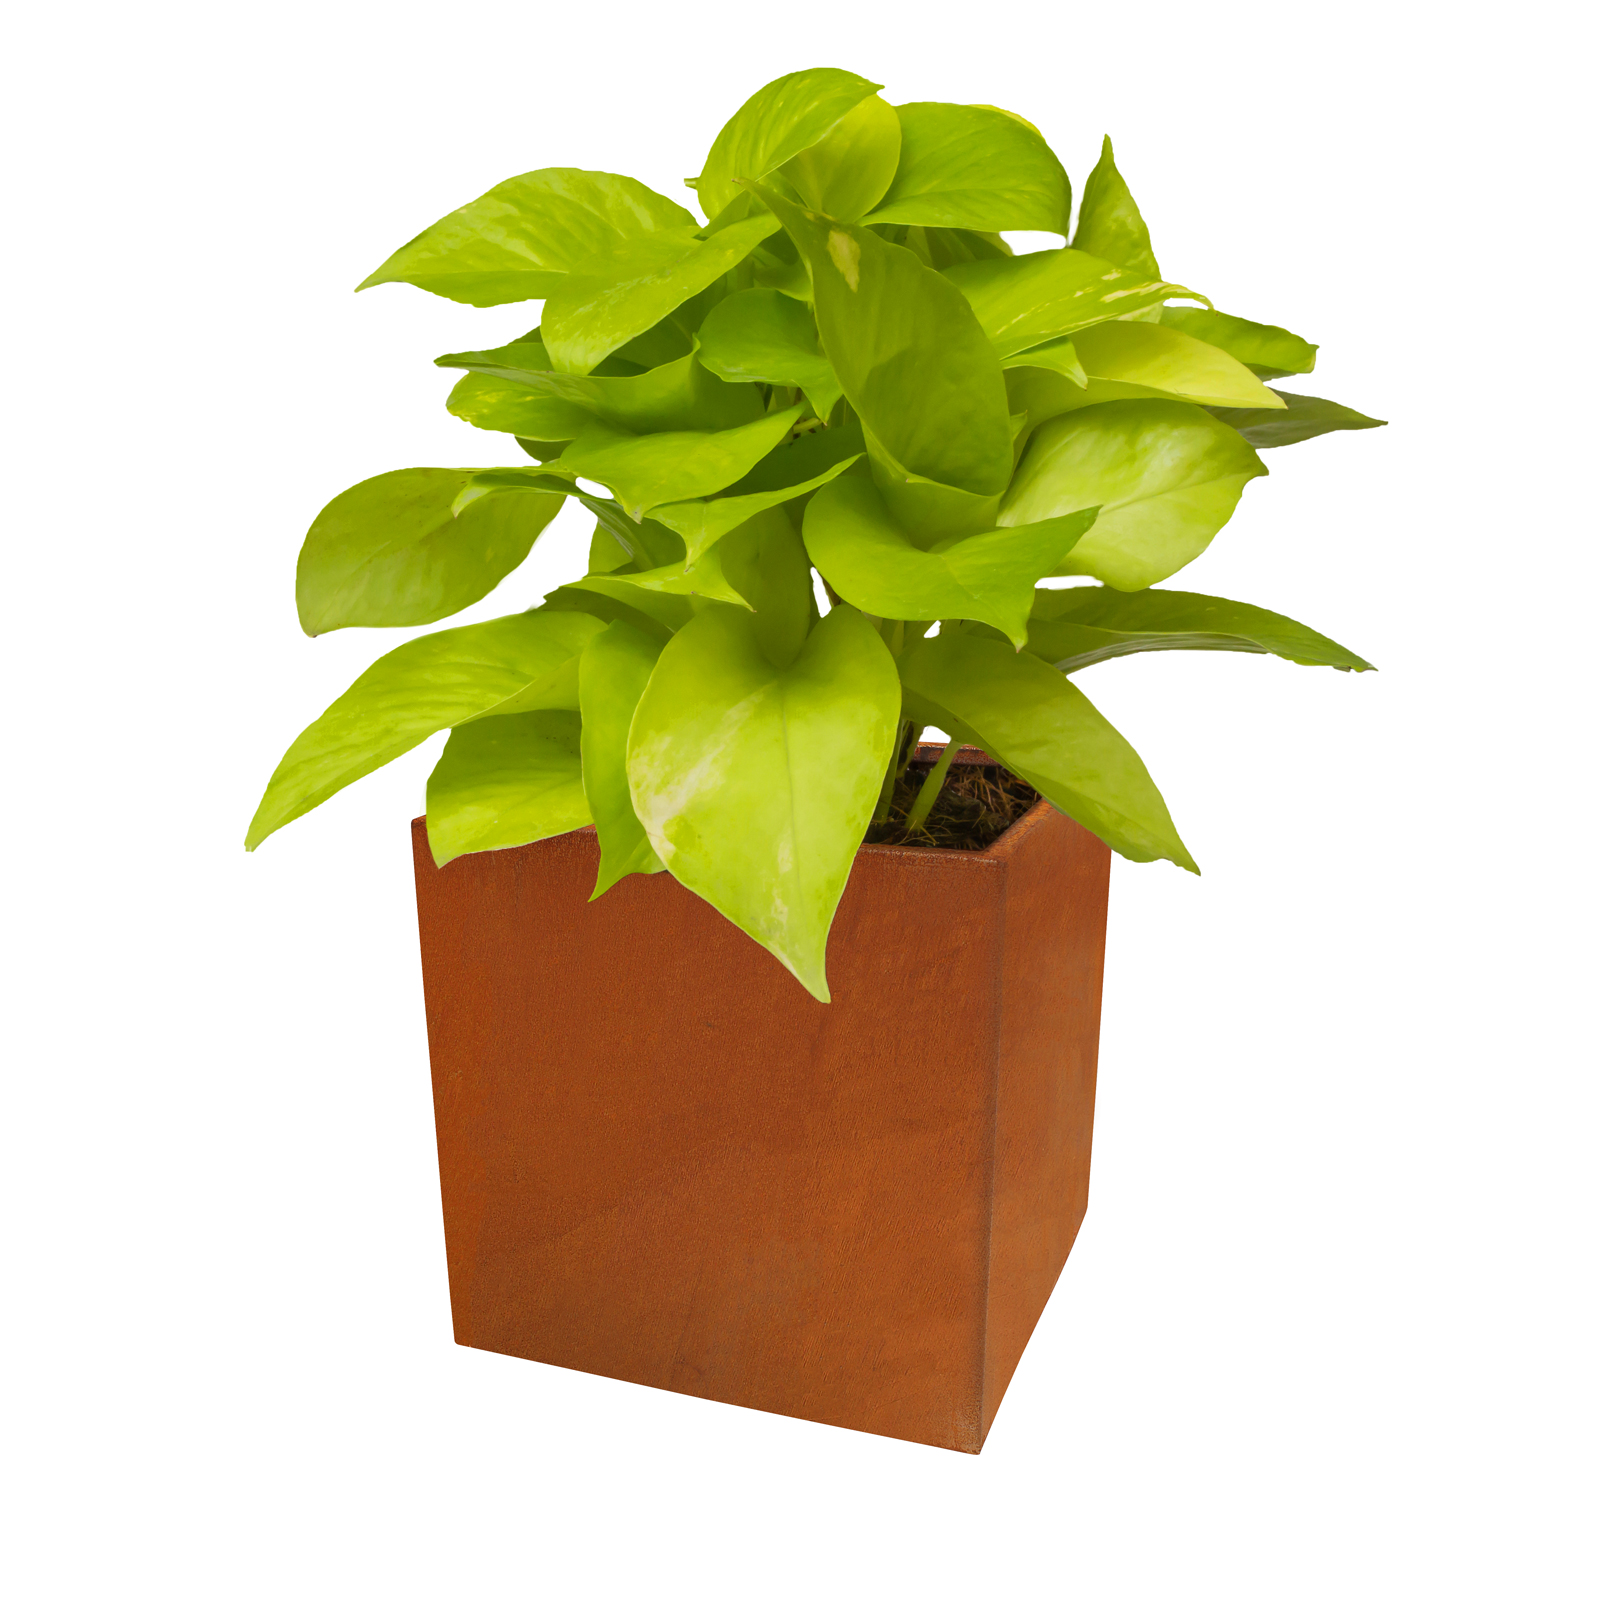 18486 cafe planter with plants 430x430x430